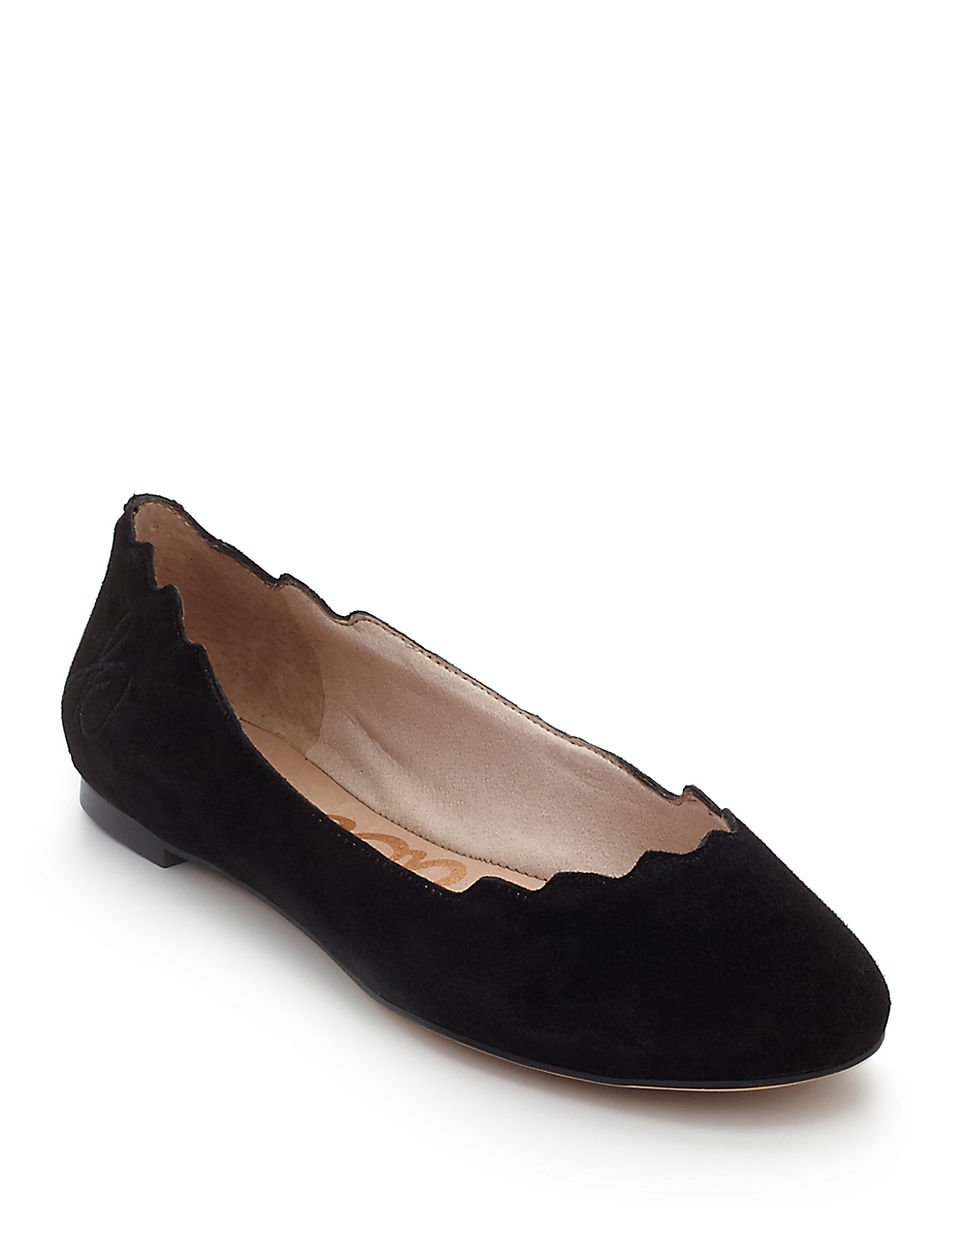 fd54172a76702 Sam Edelman Augusta Scalloped Suede Flats in Black - Lyst